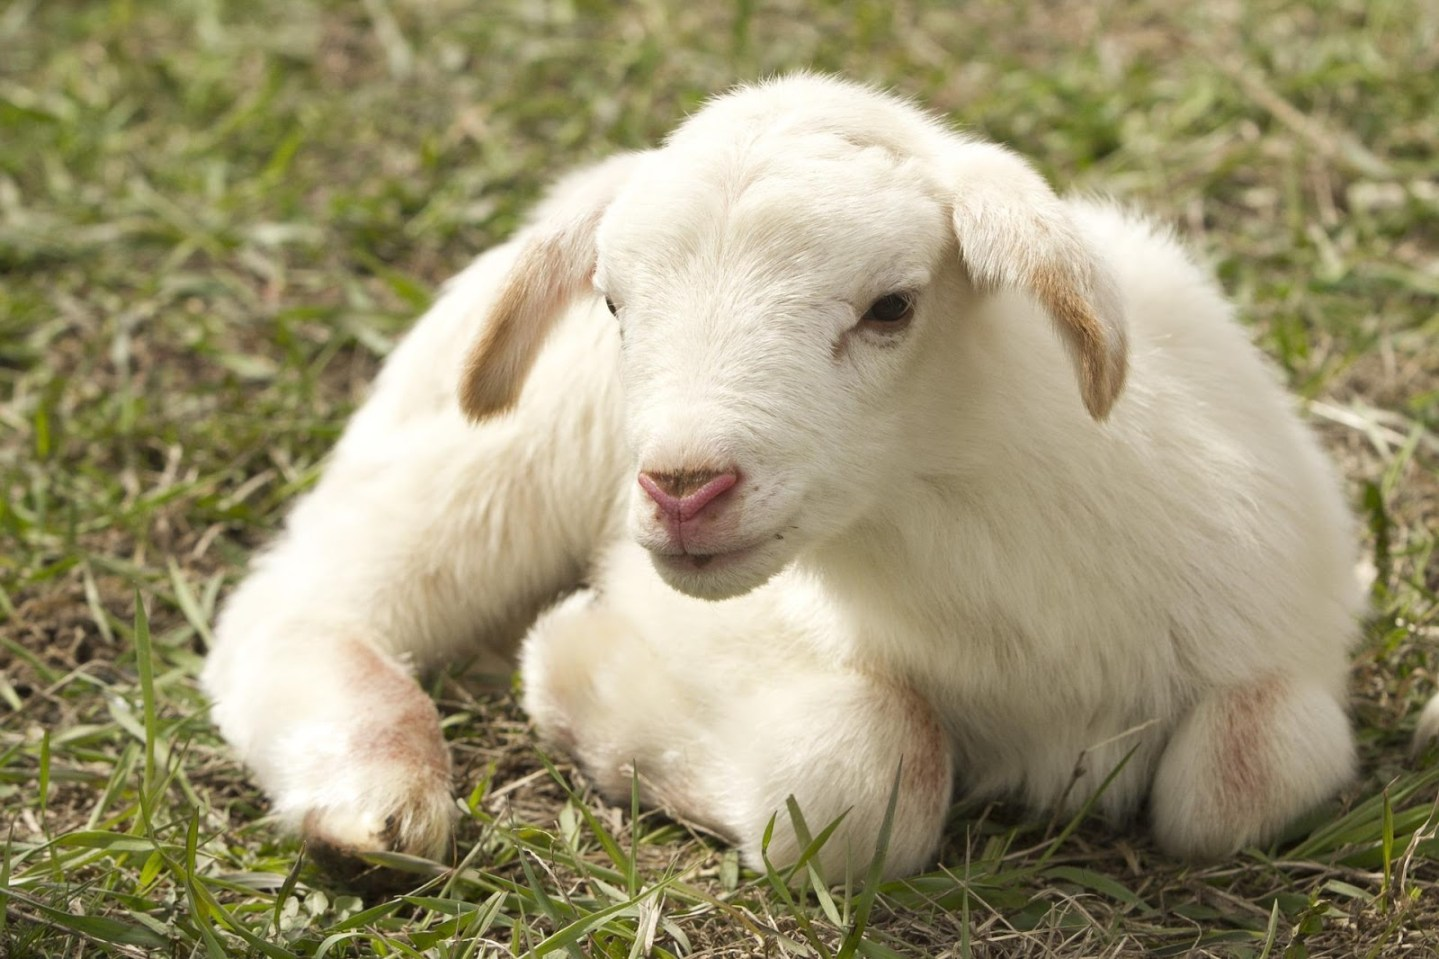 A smallholder's baby goat or kid, lying in a field